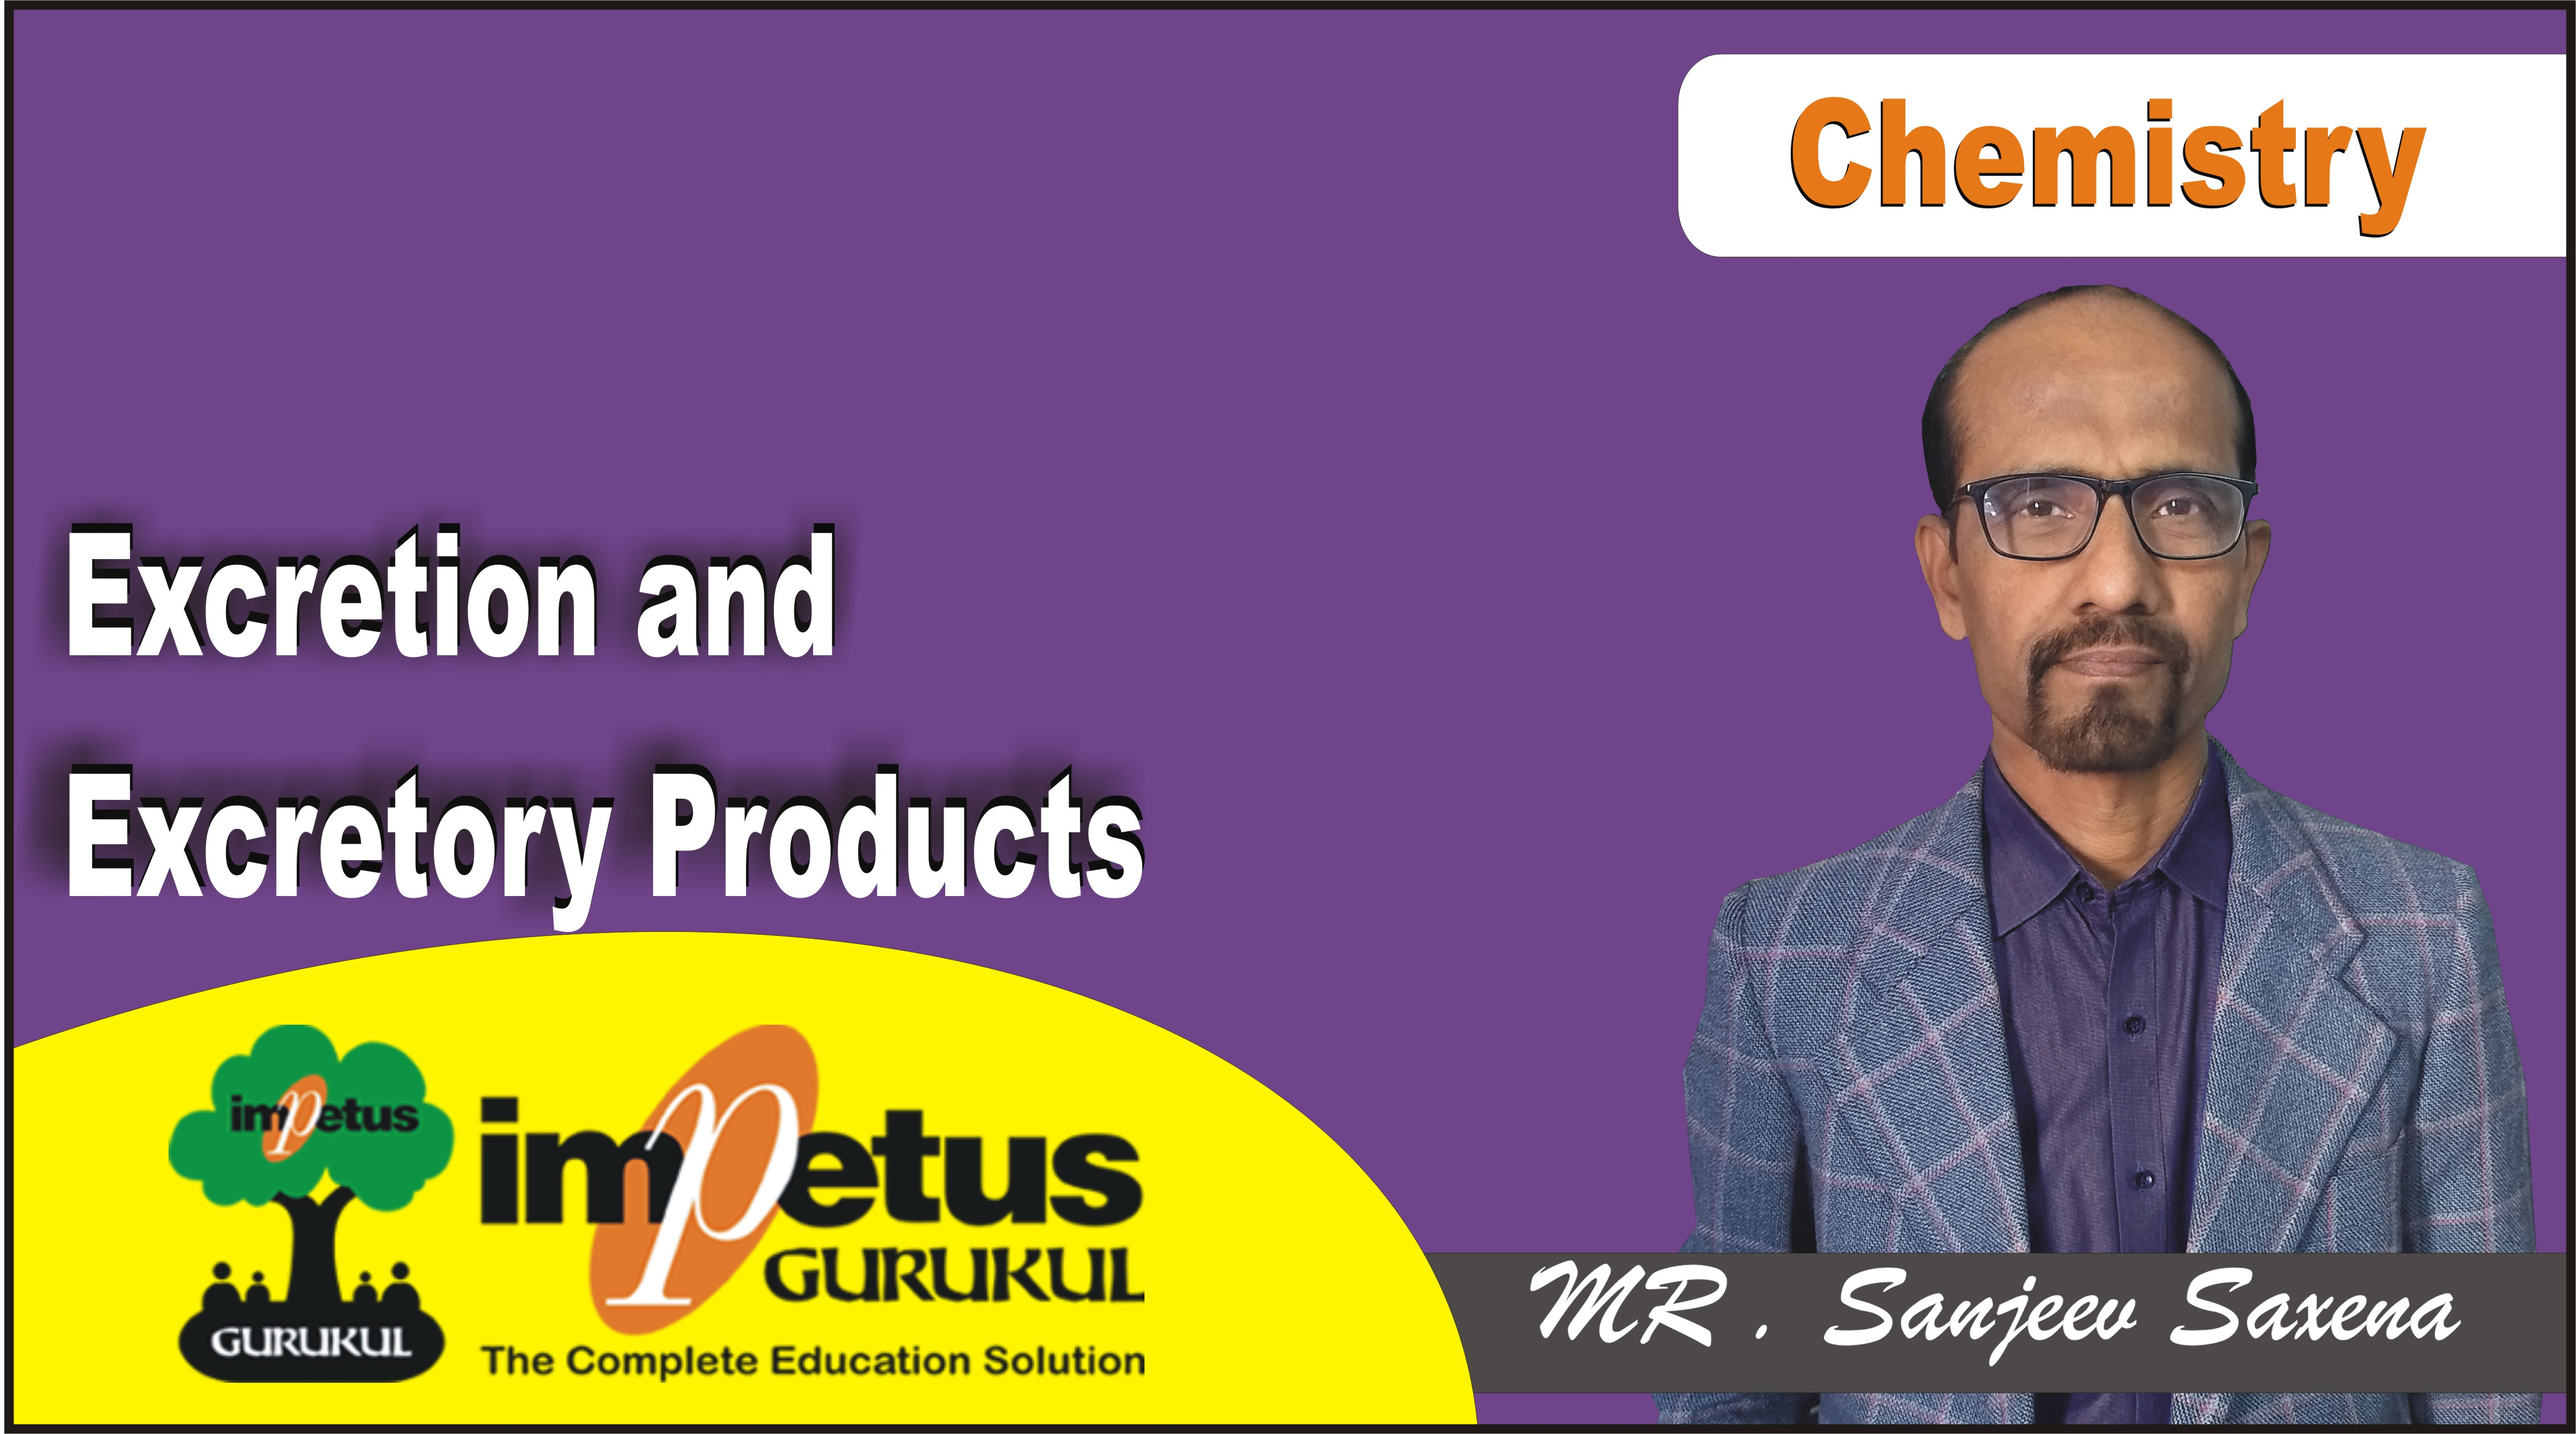 Excretion and Excretory Products